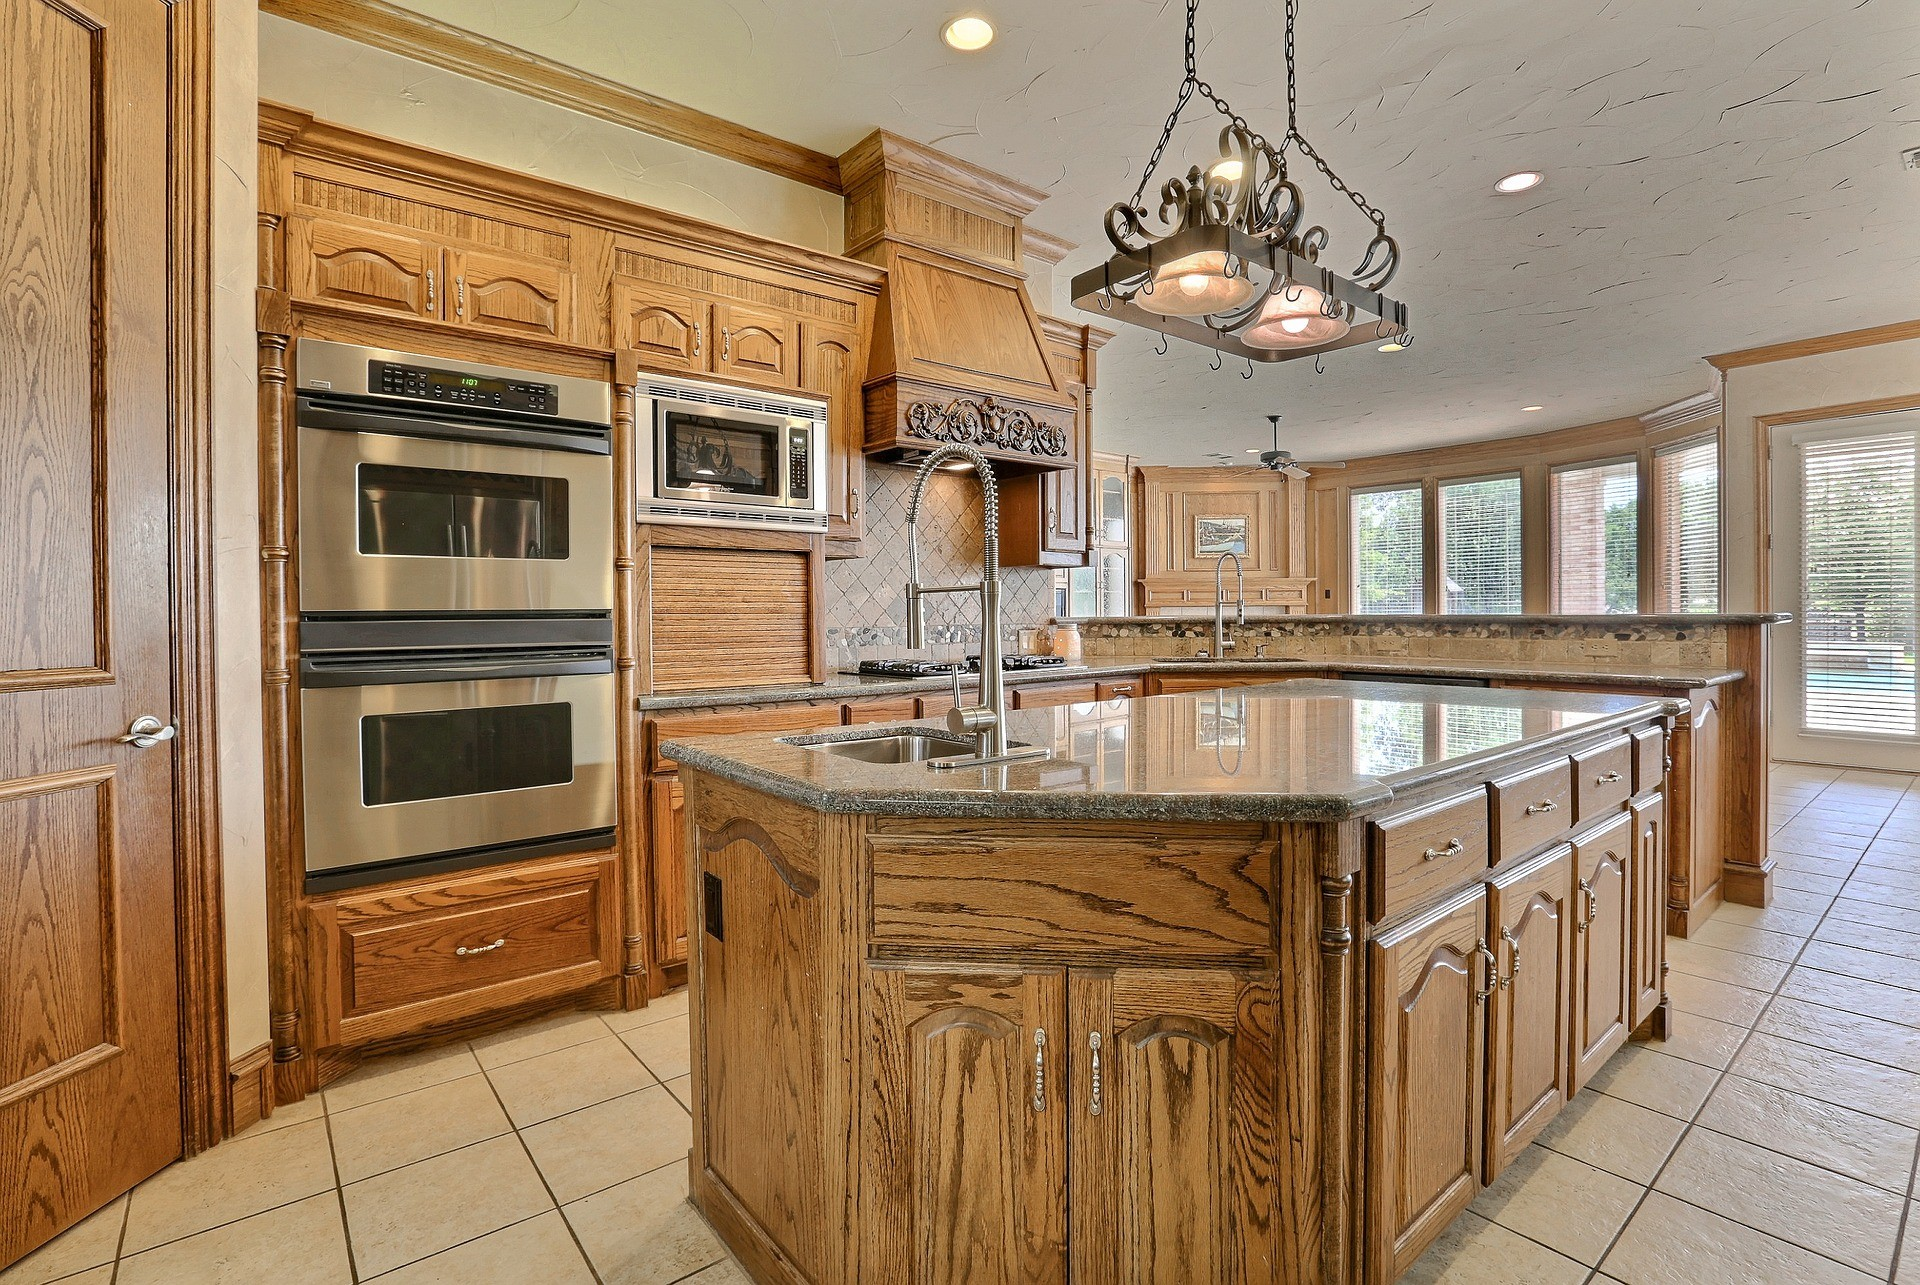 Tampa Custom Kitchen Remodeling Pros - countertops, bathrooms, renovations, custom cabinets, flooring-53-We do great kitchen & bath remodeling, home renovations, custom lighting, custom cabinet installation, cabinet refacing and refinishing, outdoor kitchens, commercial kitchen, countertops and more